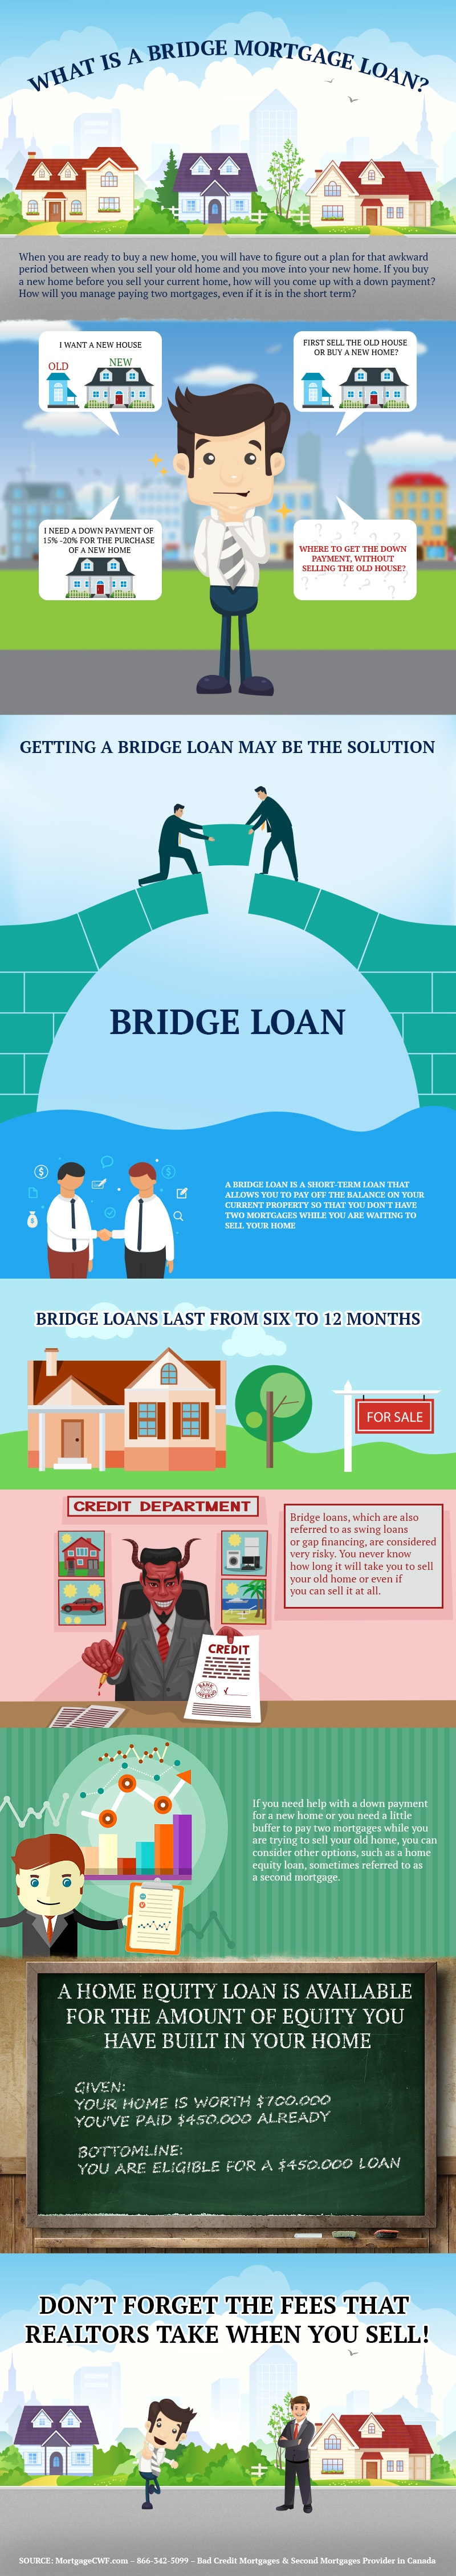 What is a Bridge Mortgage Loan?